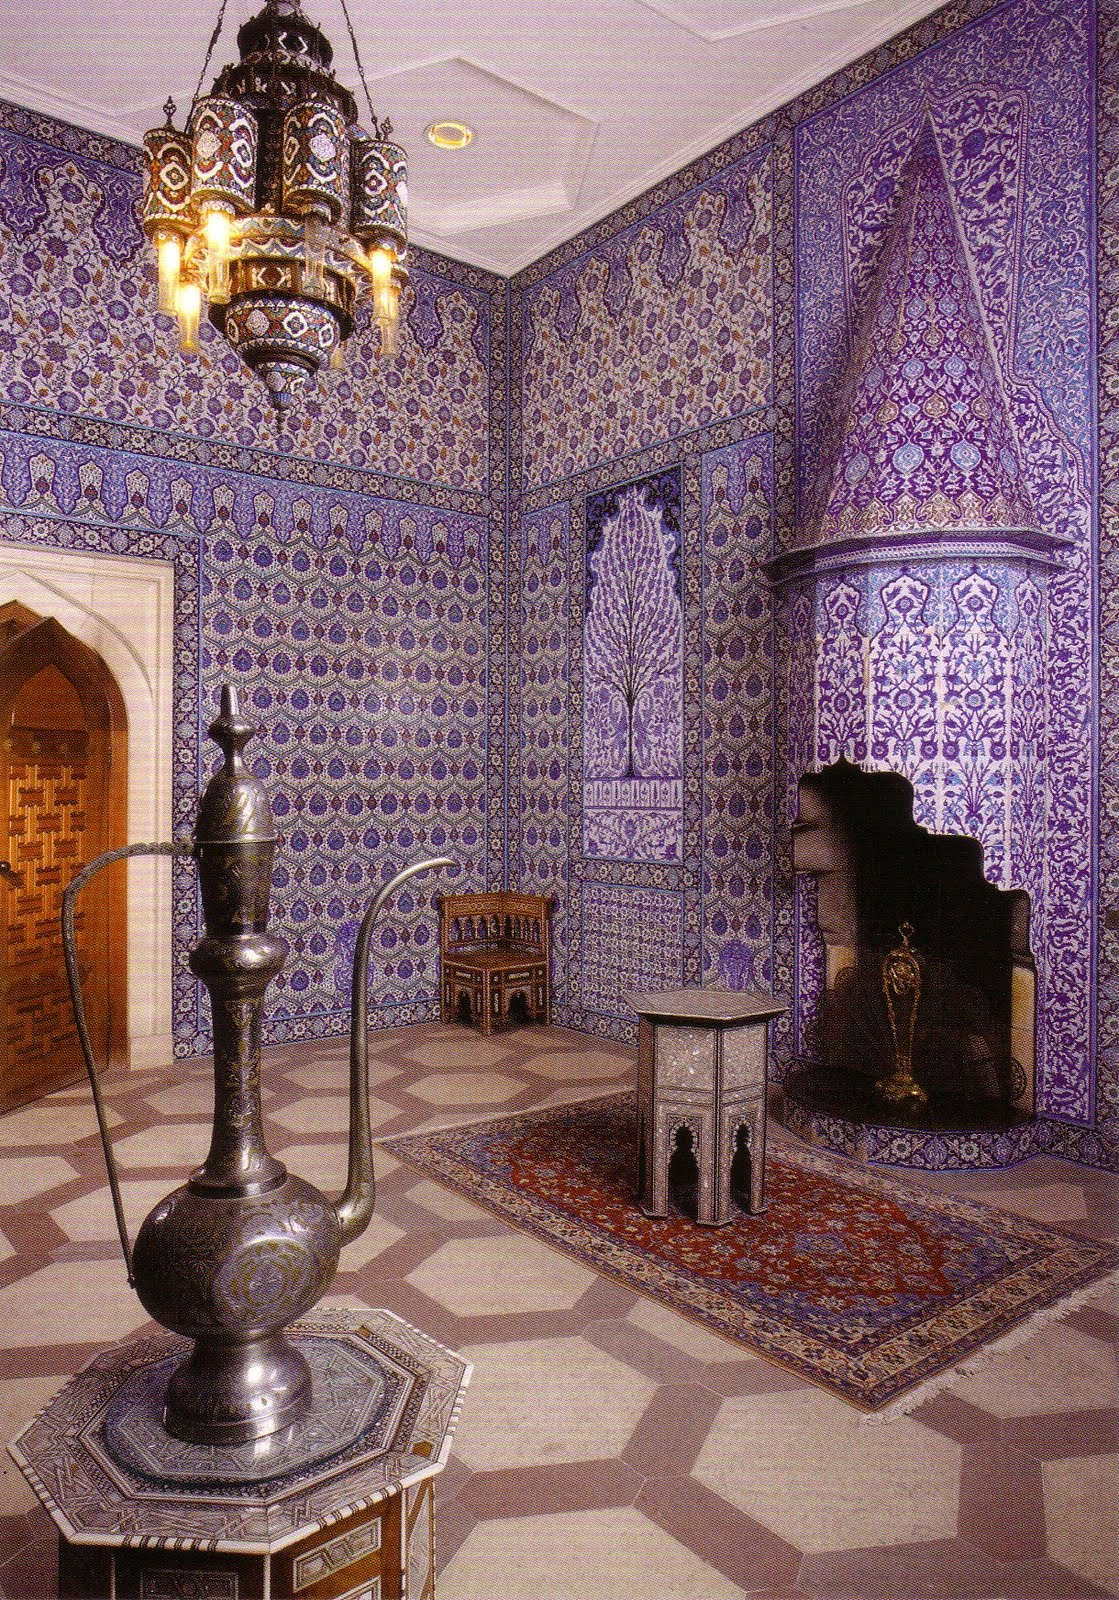 Trends With Transformations The Beauty Of Tiles